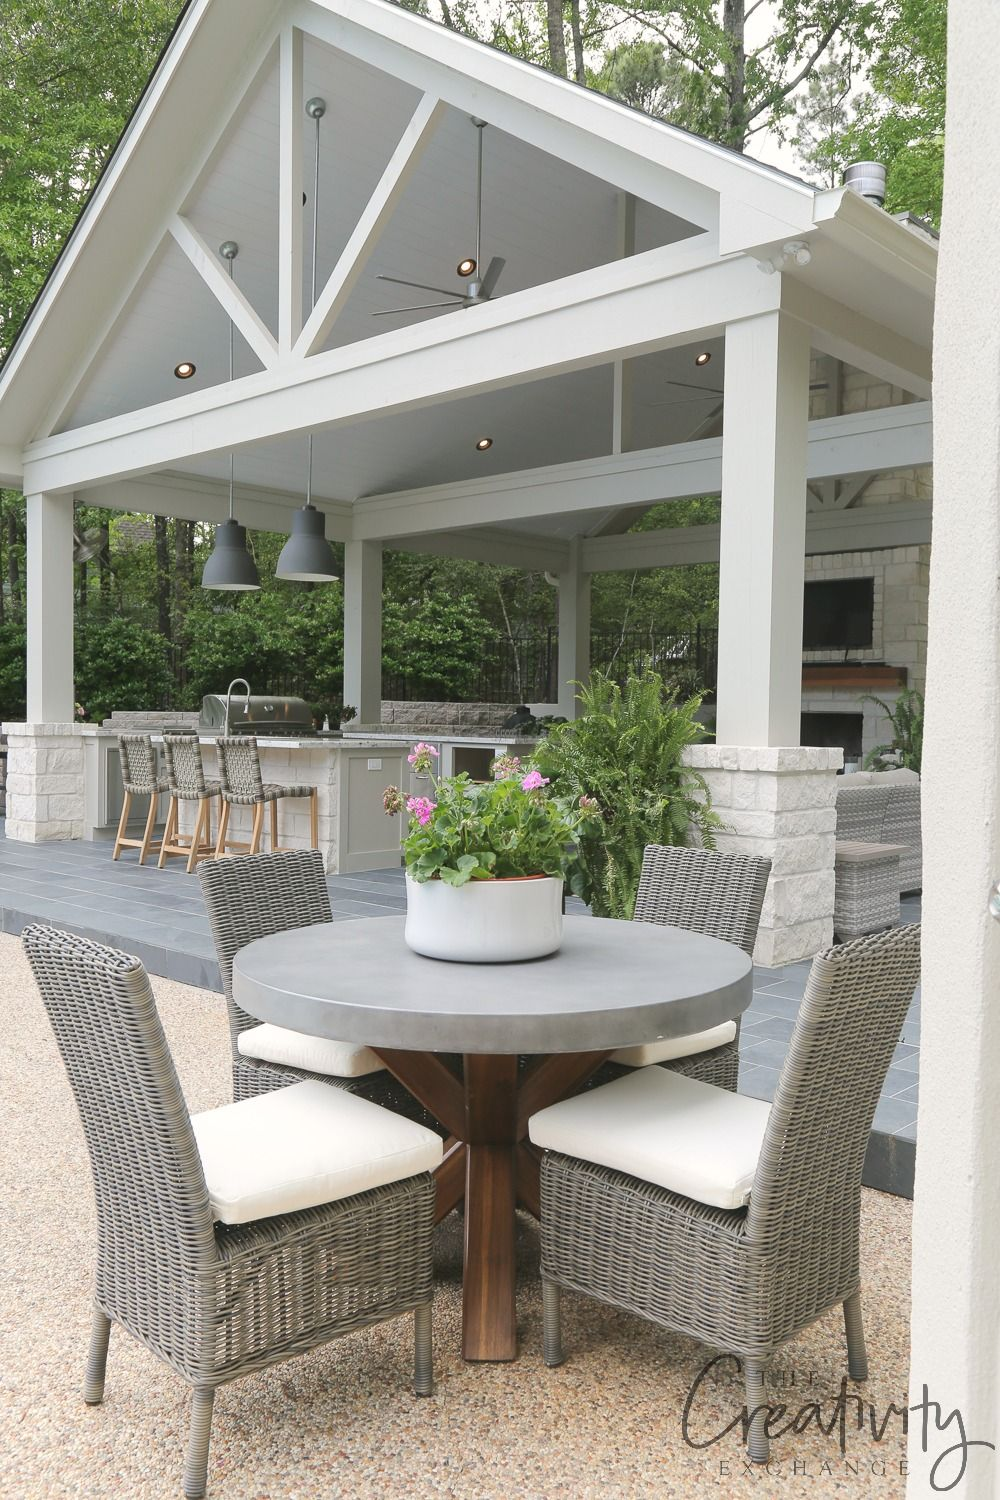 Outdoor Kitchen And Pool House Project Reveal Outdoor Remodel Outdoor Pergola Outdoor Kitchen Design